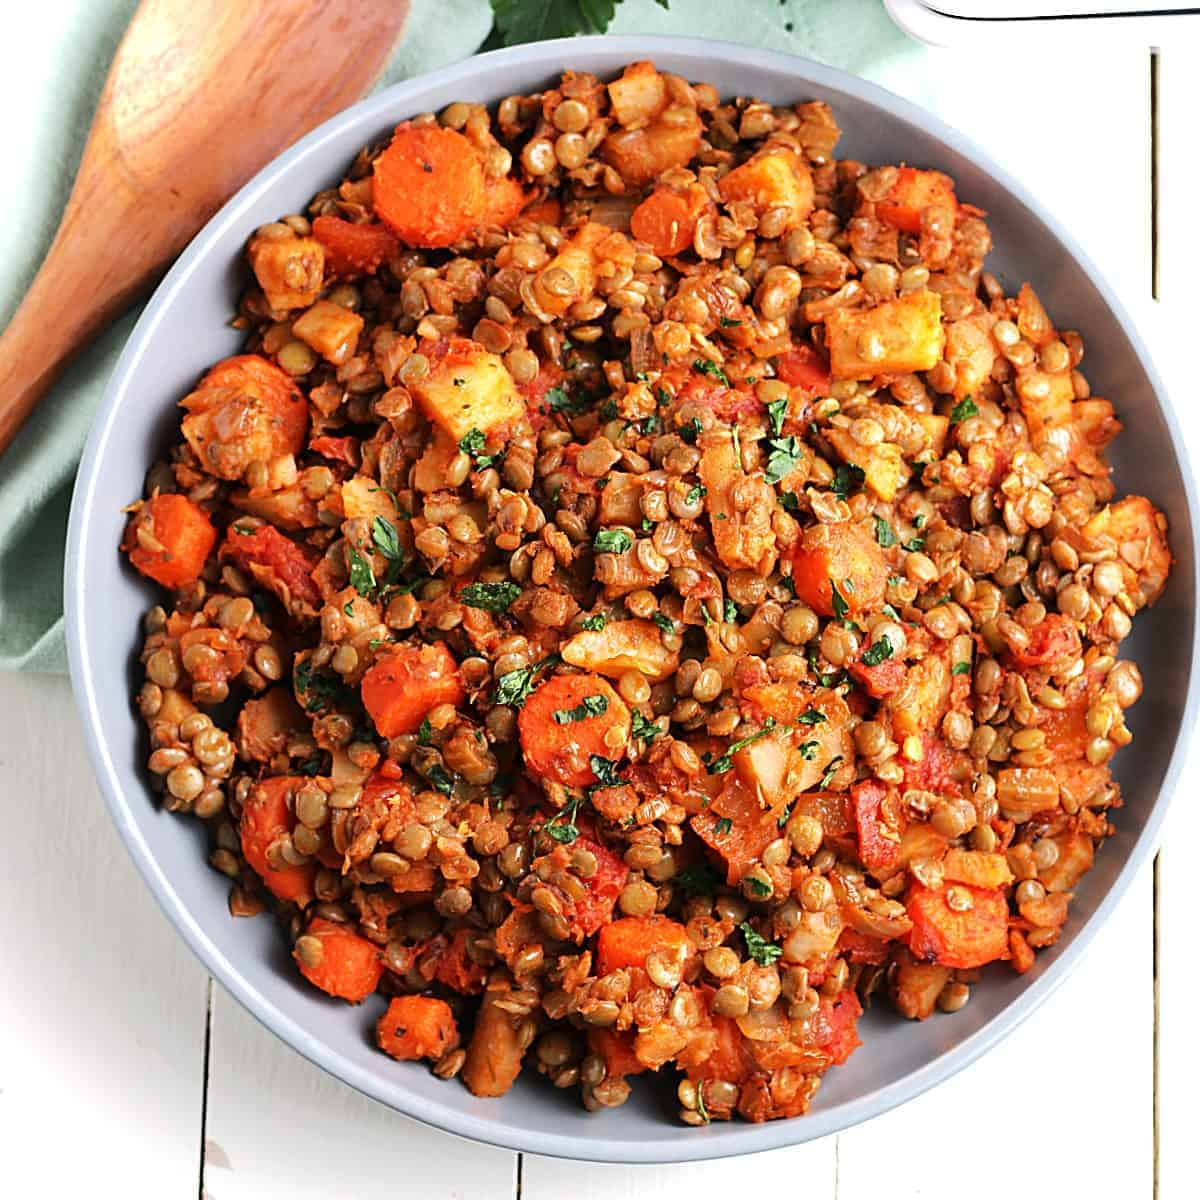 Overhead view of a serving dish full of a skillet potato recipe with carrots and lentils.